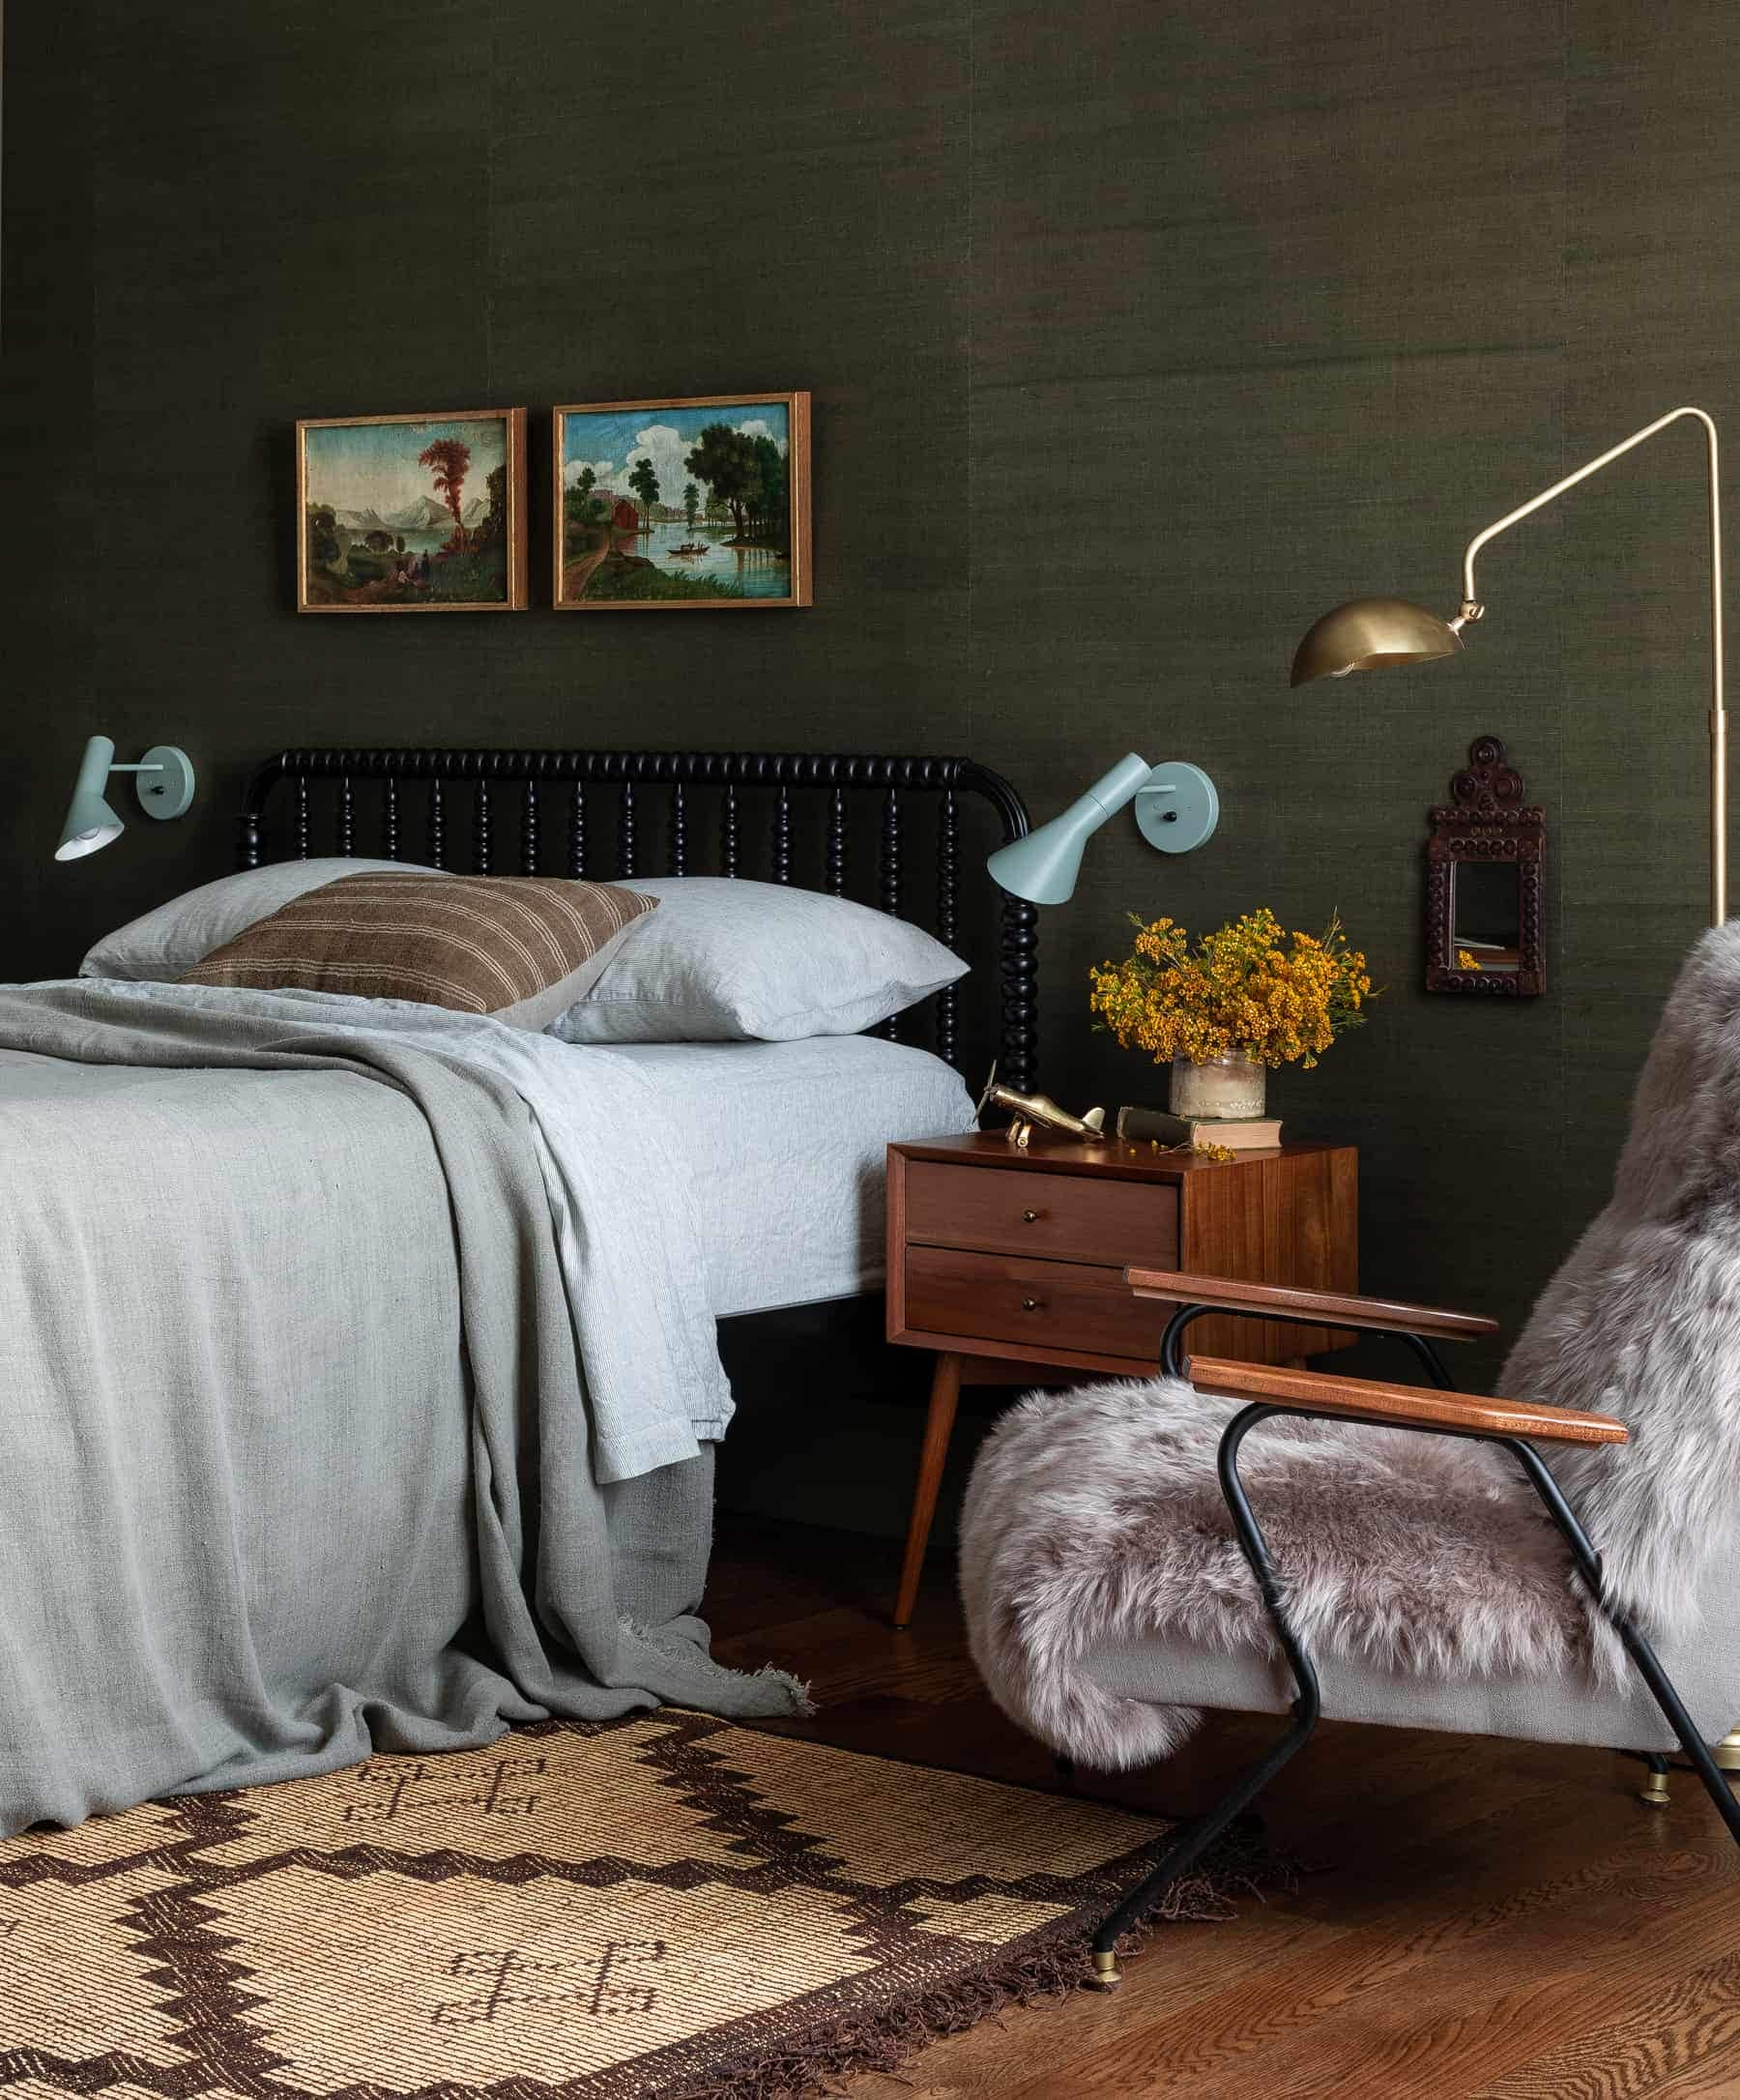 this is an eclectic dark bedroom by heidi caillier